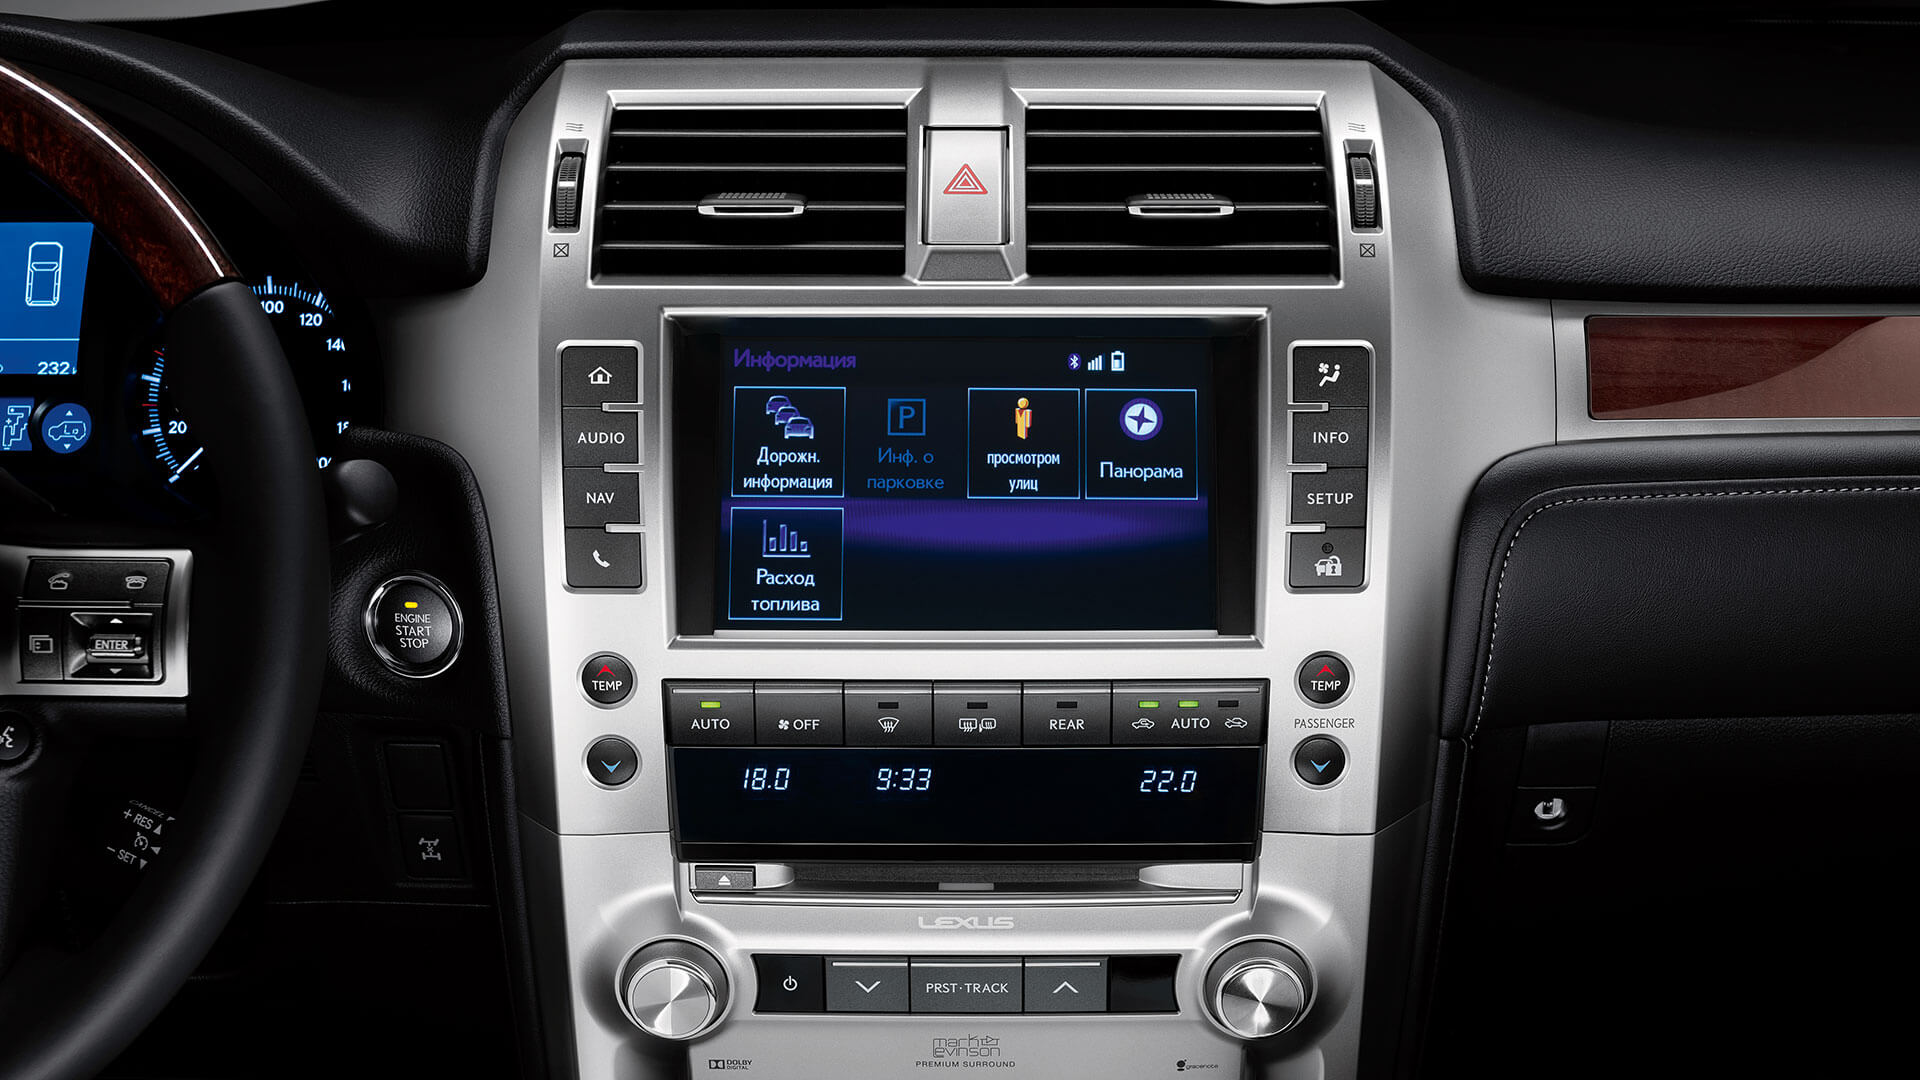 2017 lexus gx 460 features connected services